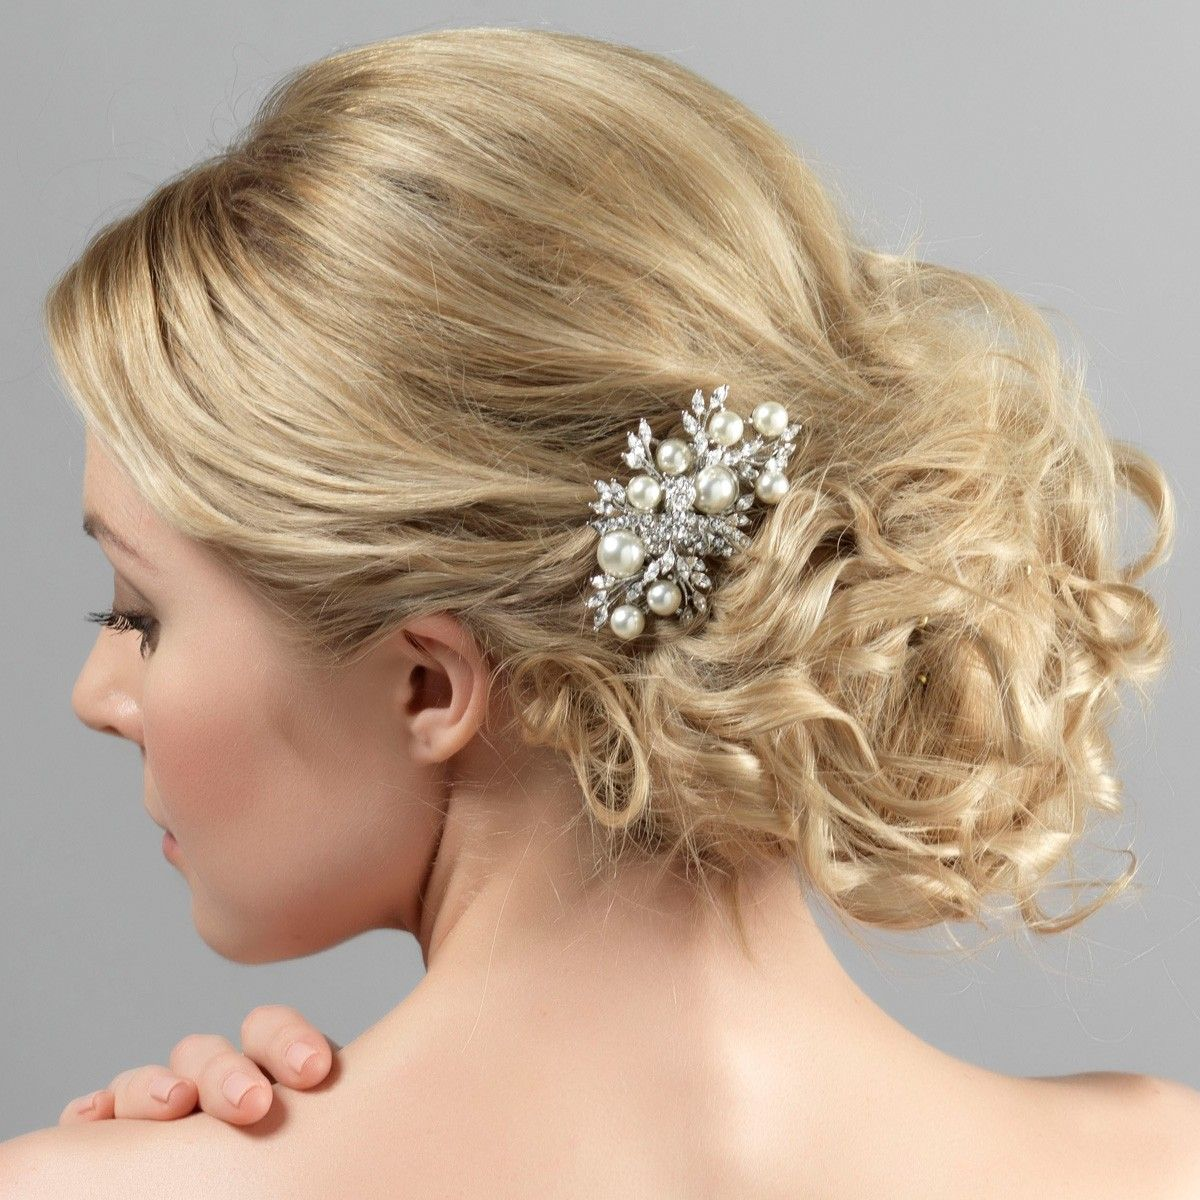 enchanting pearl hair comb | hair combs, wedding hair accessories